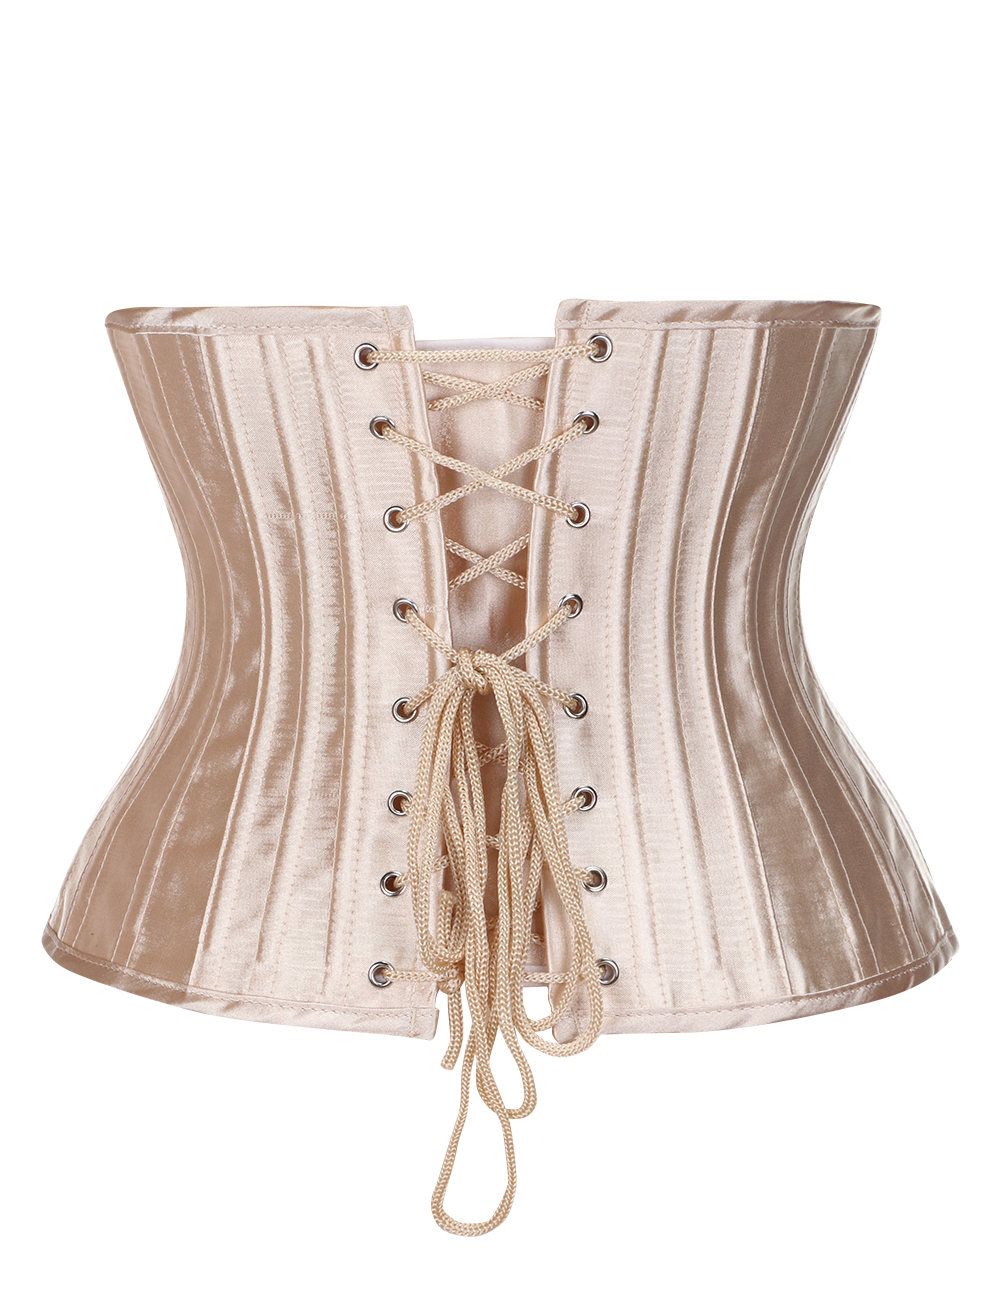 //cdn.affectcloud.com/feelingirldress/upload/imgs/Shapewear/Steel_Boned_Corsets/A180049-SK1/A180049-SK1-202007215f1682303ff0e.jpg